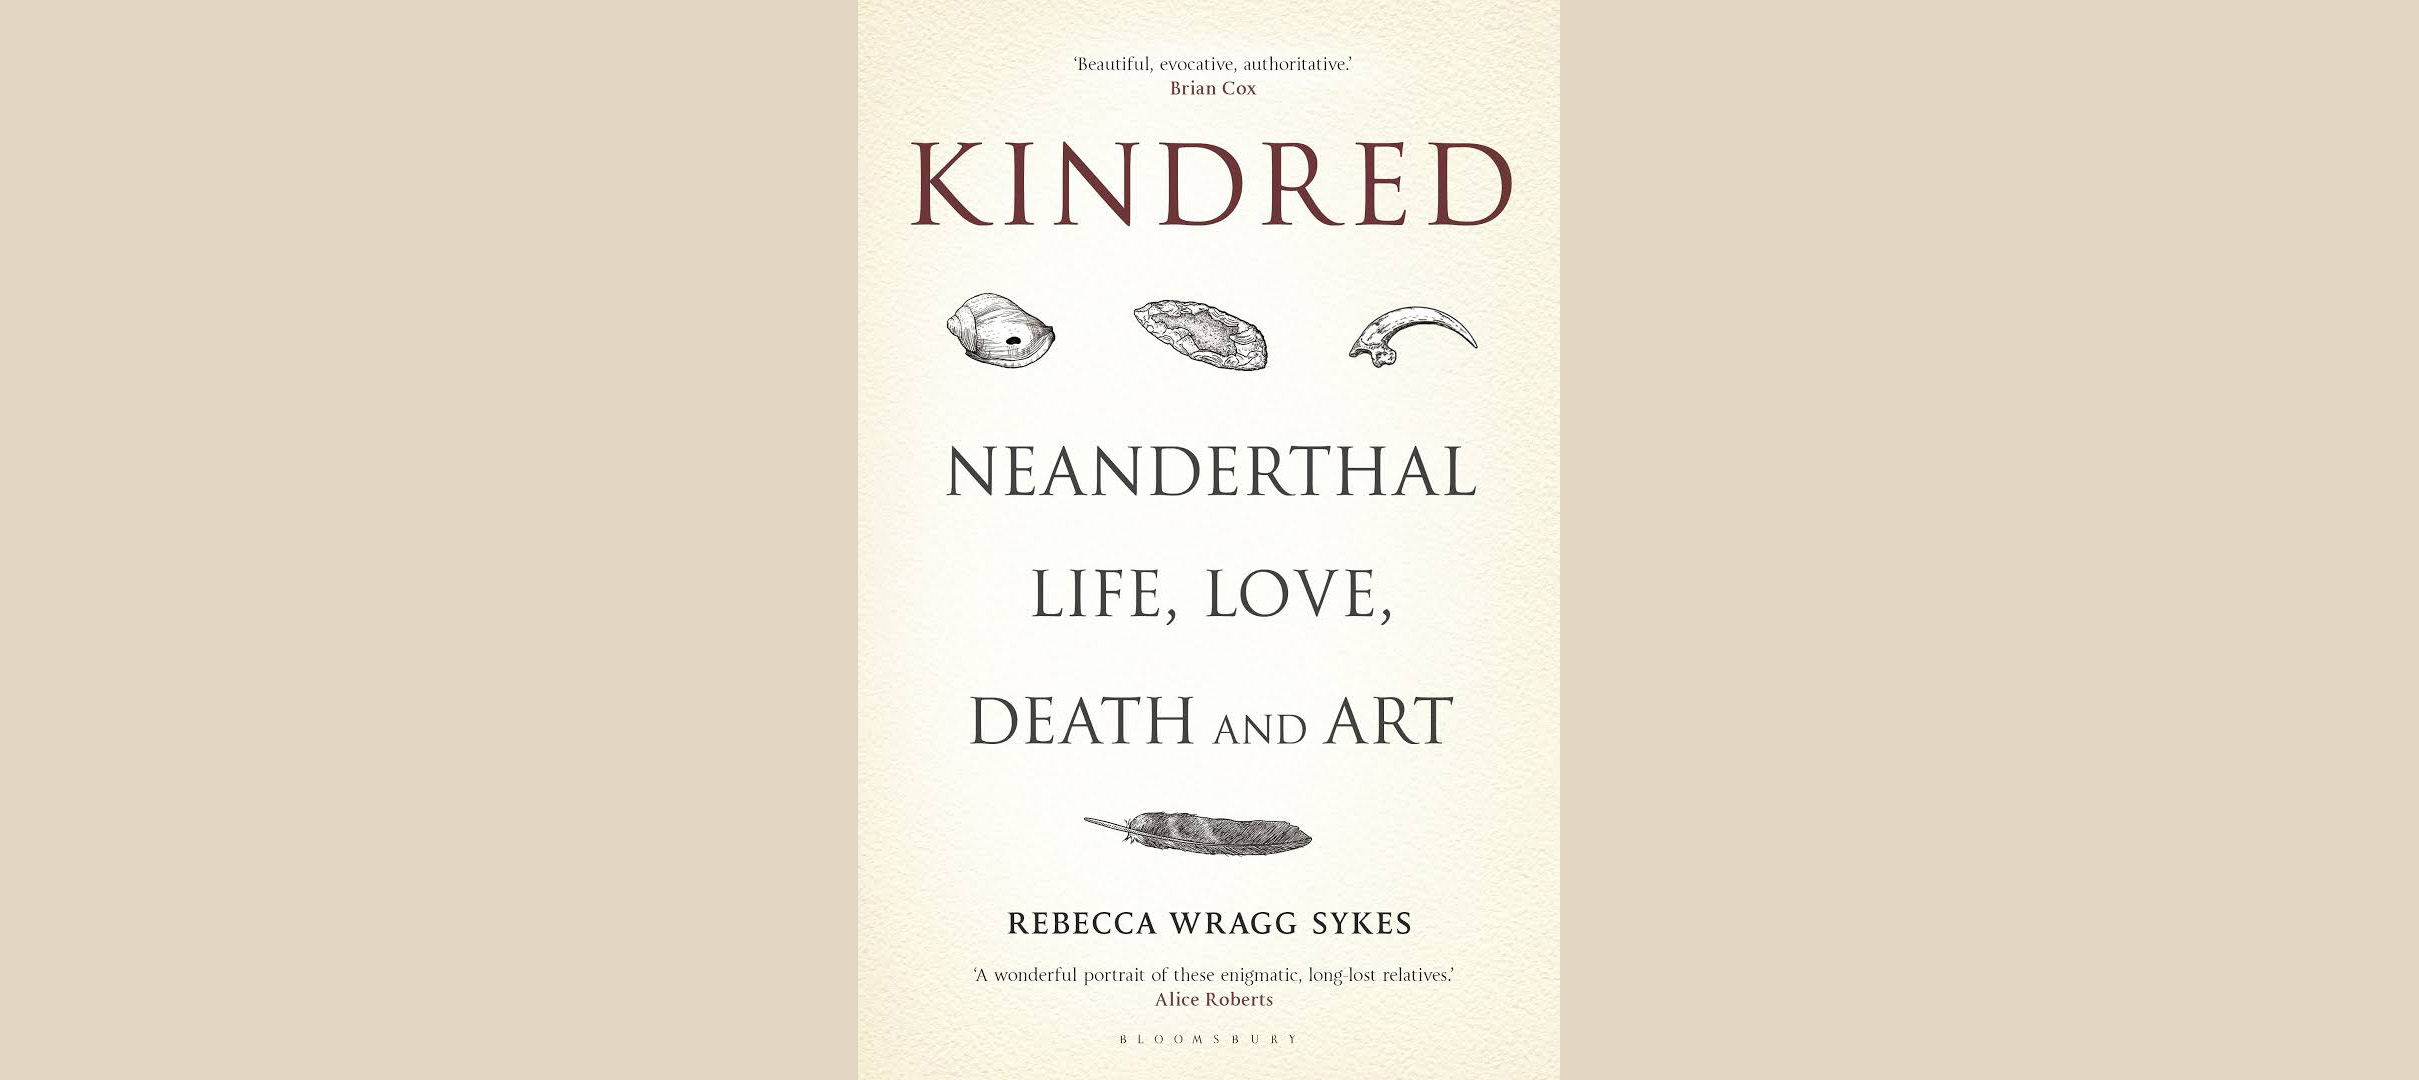 <strong>Kindred: Neanderthal Life, Love, Death and Art</strong>, <em>Rebecca Wragg Sykes</em> <i>Bloomsbury Sigma</i> (2020)